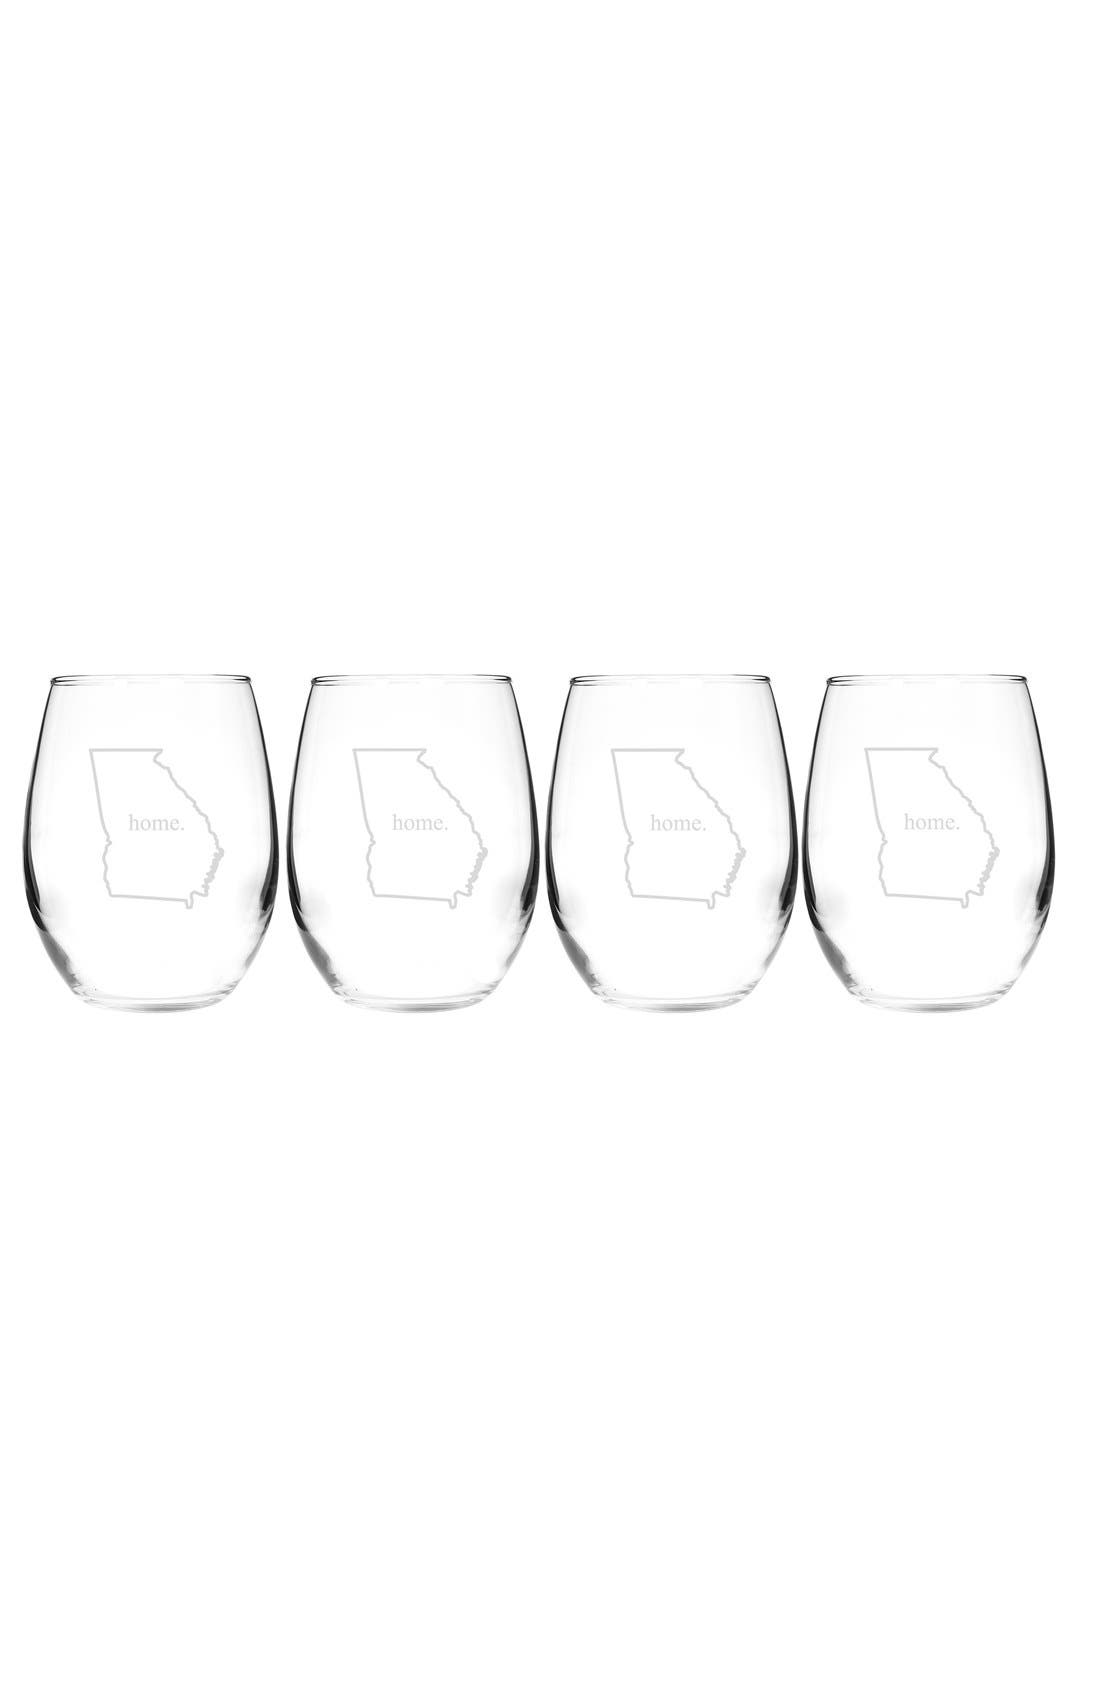 Home State Set of 4 Stemless Wine Glasses,                             Main thumbnail 11, color,